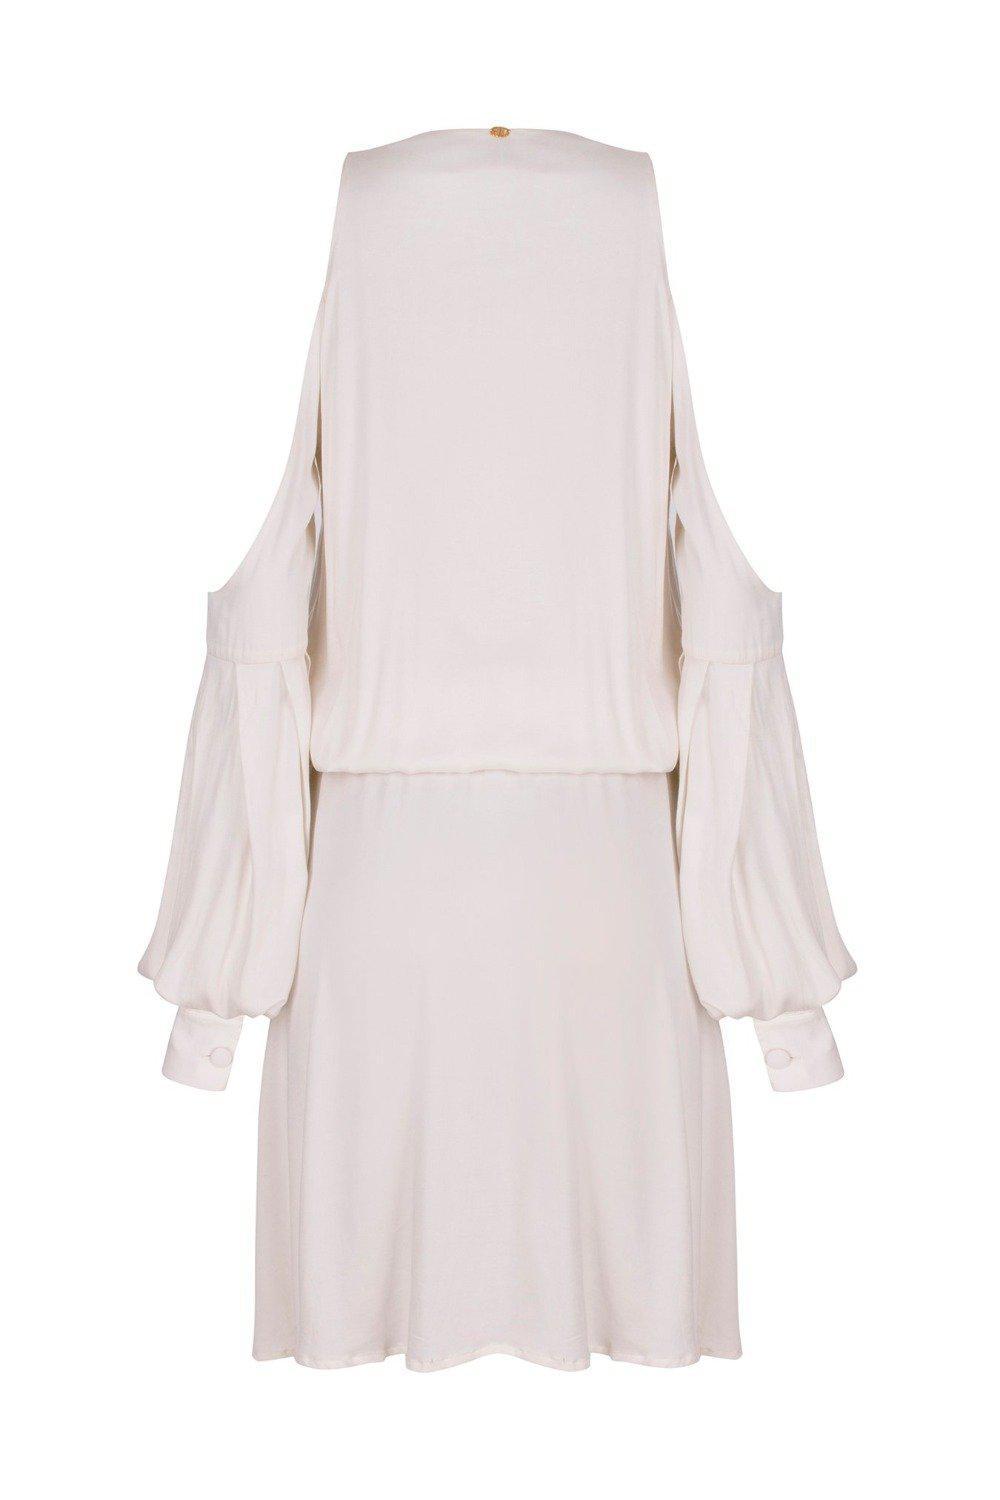 Horse Skin Solid Short Dress with Bare shoulders and Tassels 1